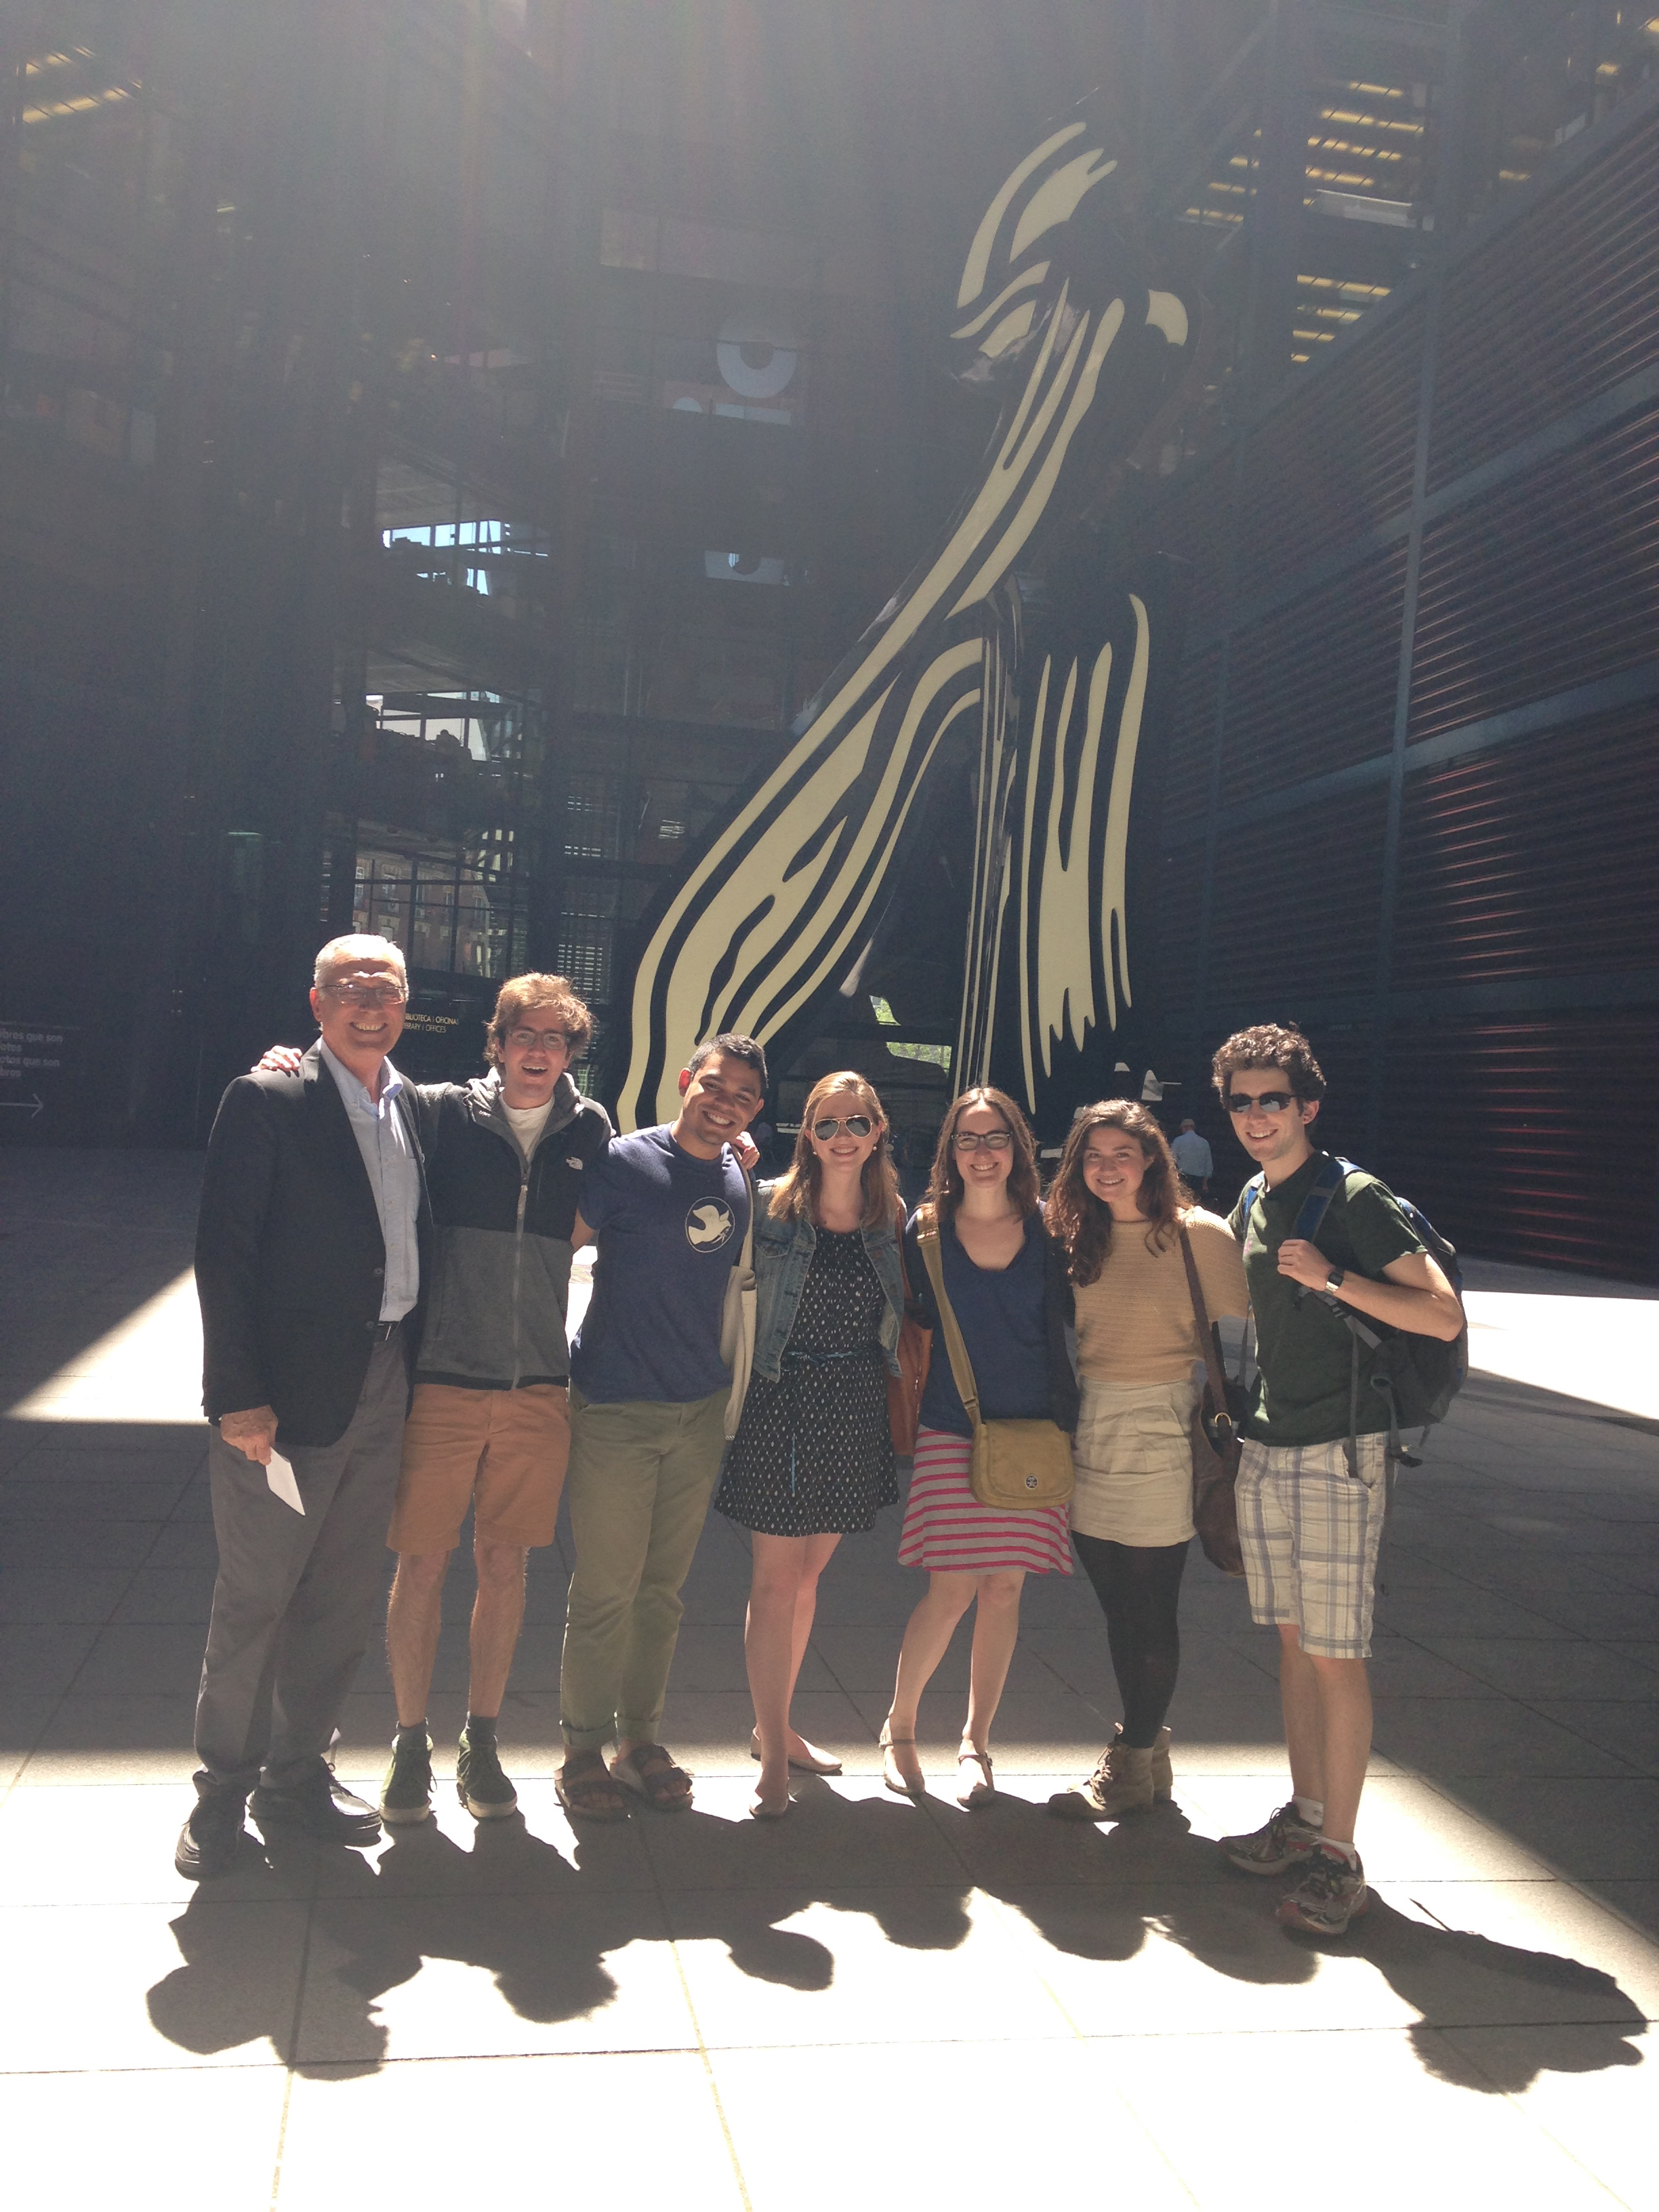 I tagged along for the Contemporary Spanish Art History class where we visited la reina sofia museum